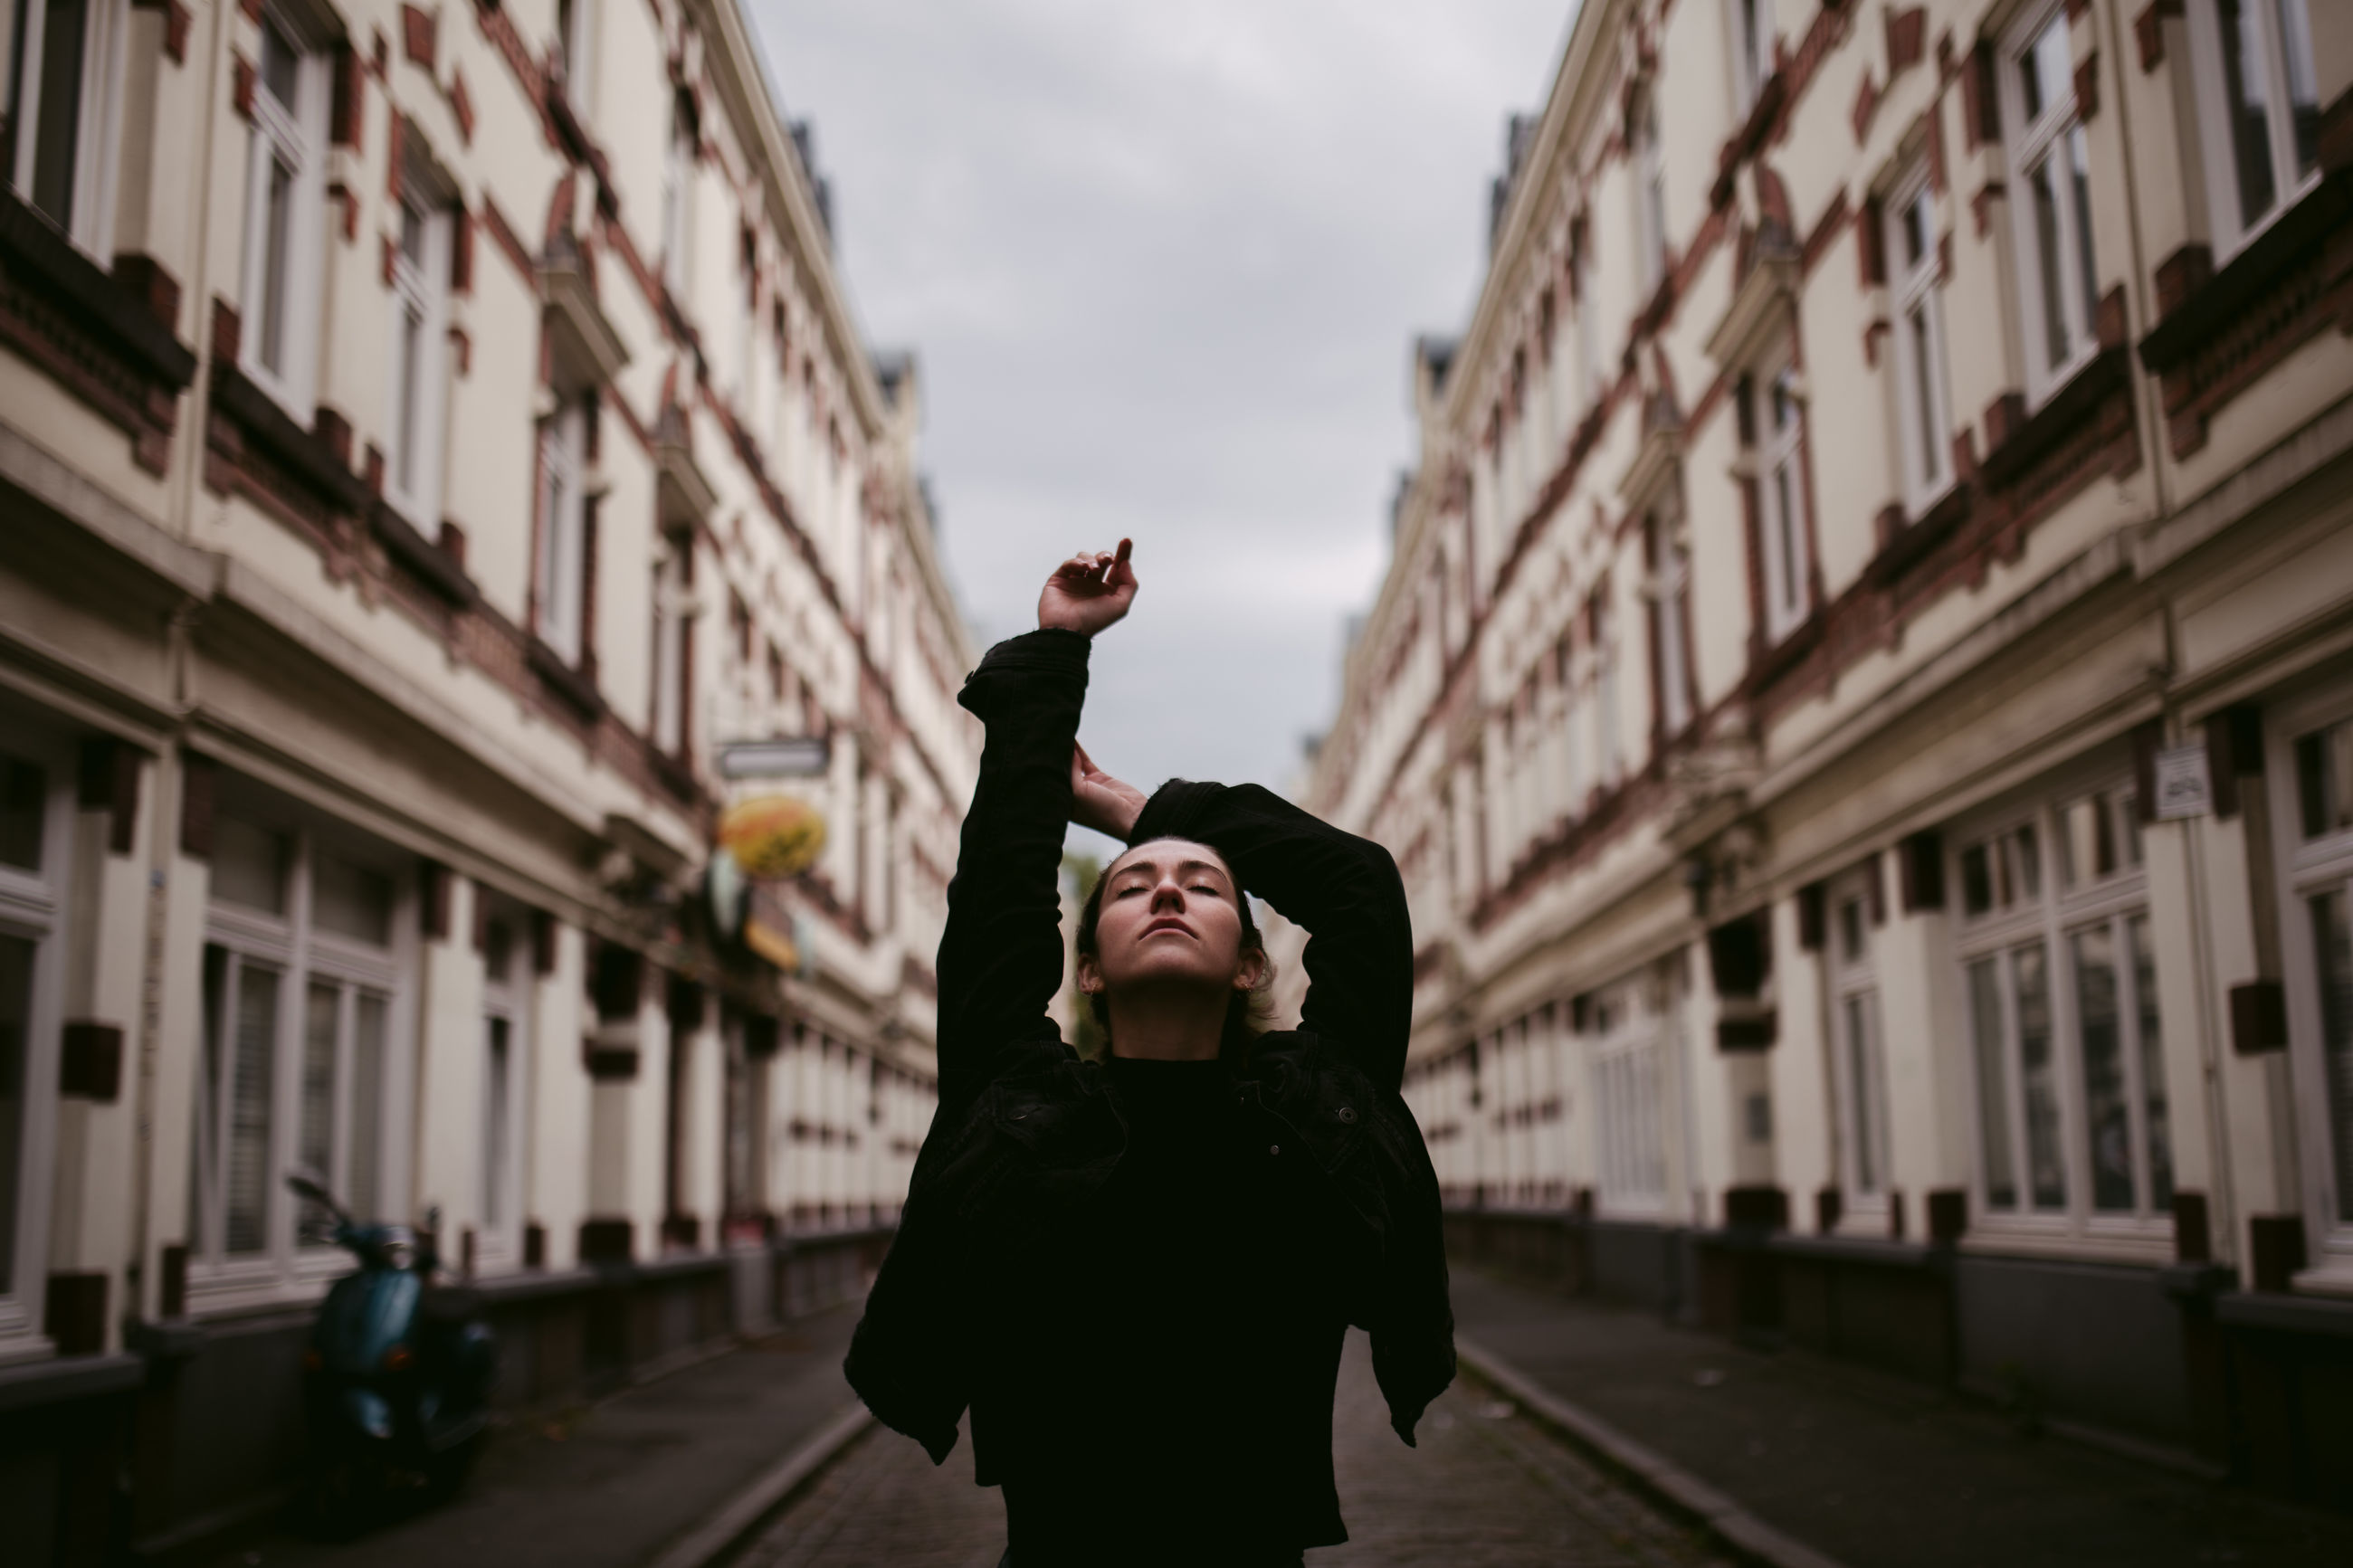 one person, building exterior, architecture, real people, city, built structure, lifestyles, leisure activity, standing, day, focus on foreground, street, young adult, three quarter length, building, nature, photography themes, adult, women, outdoors, arms raised, human arm